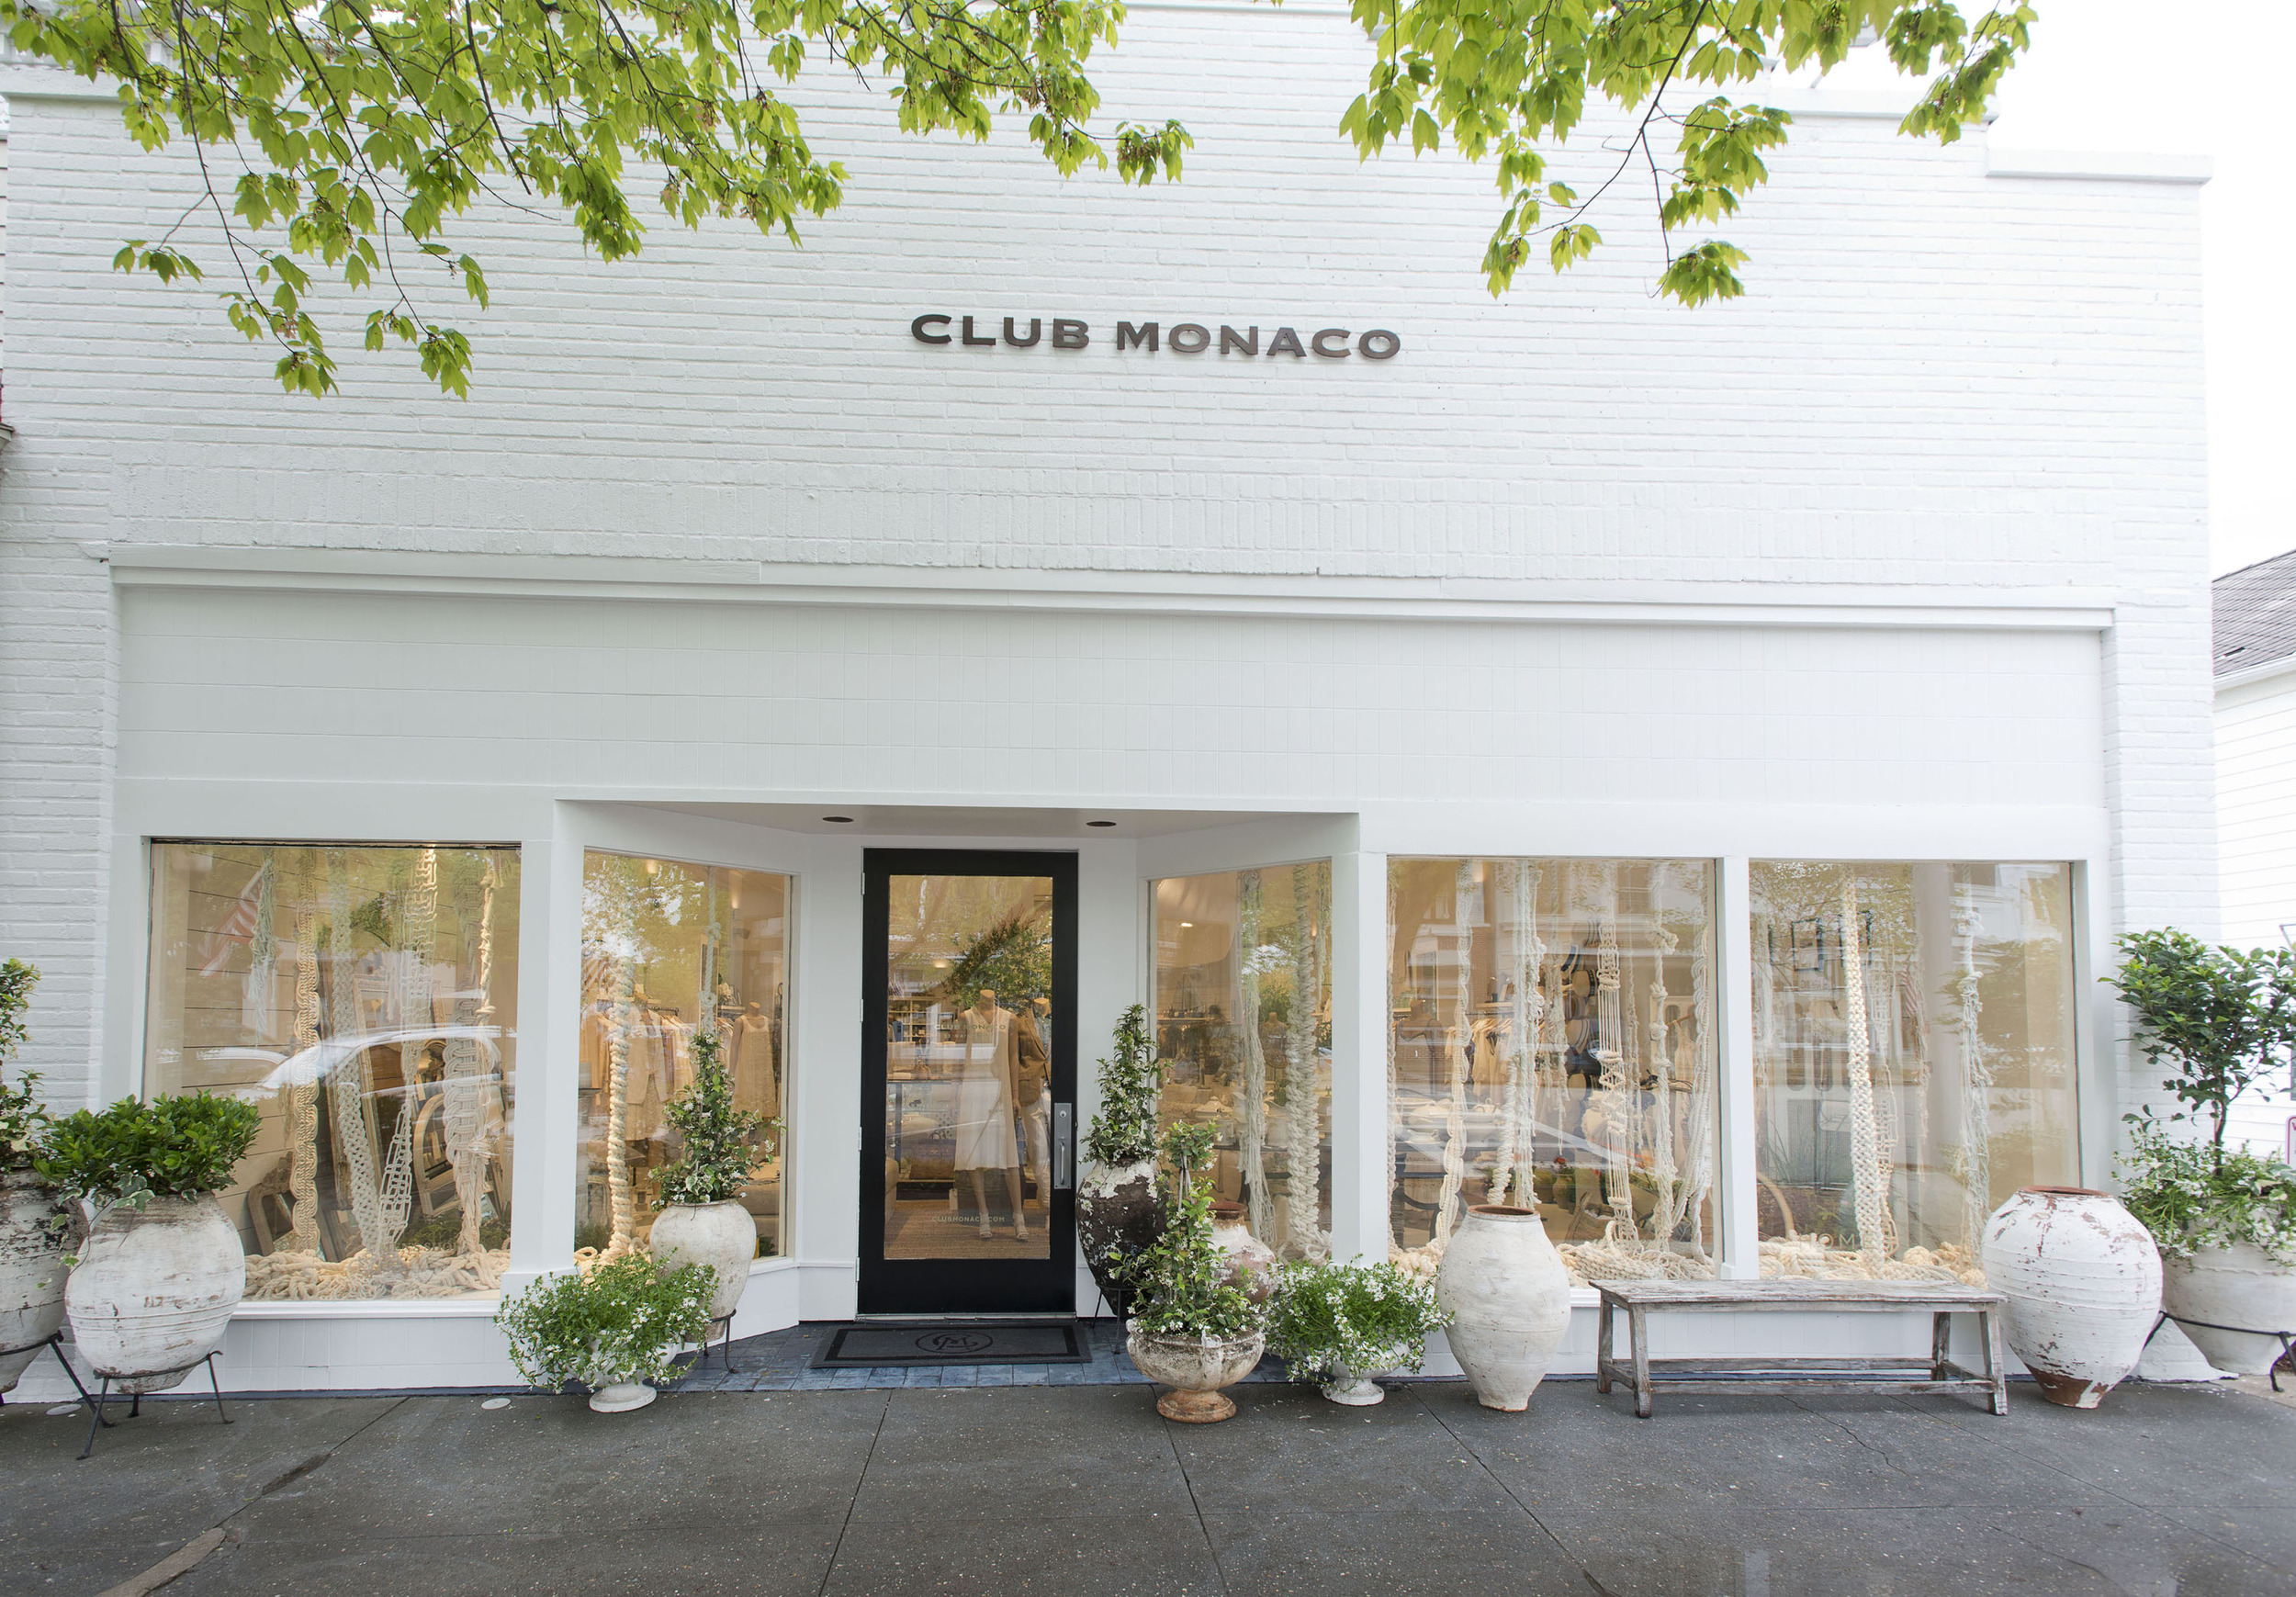 STYLE IN STORE WHY YOU WILL WANT TO MOVE INTO CLUB MONACO